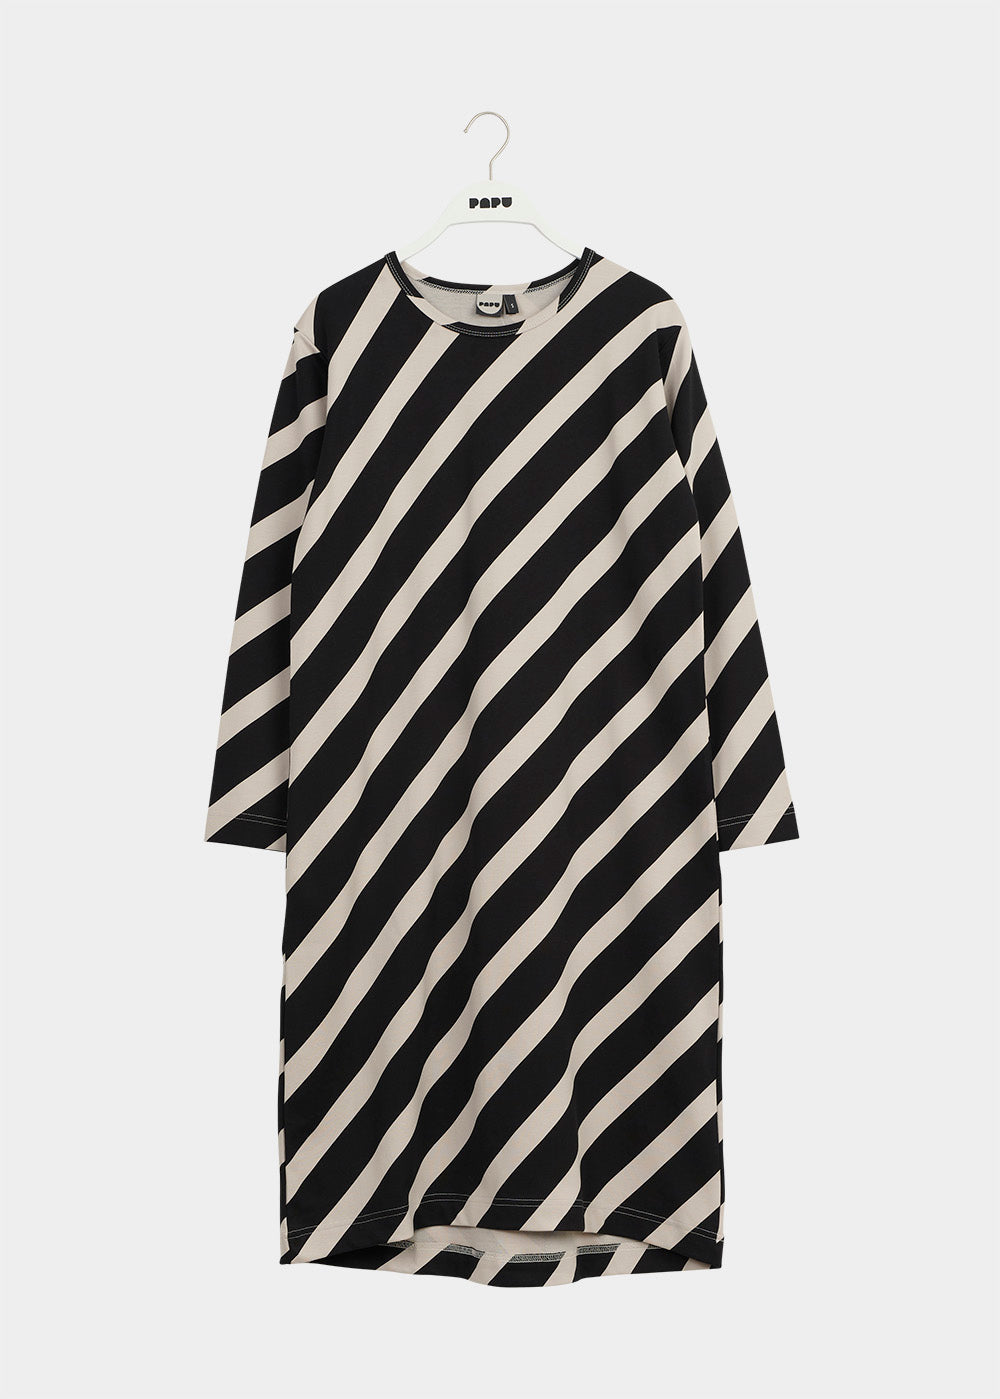 MELLOW DRESS, Huge Stripe, Black/Canvas Grey, Women